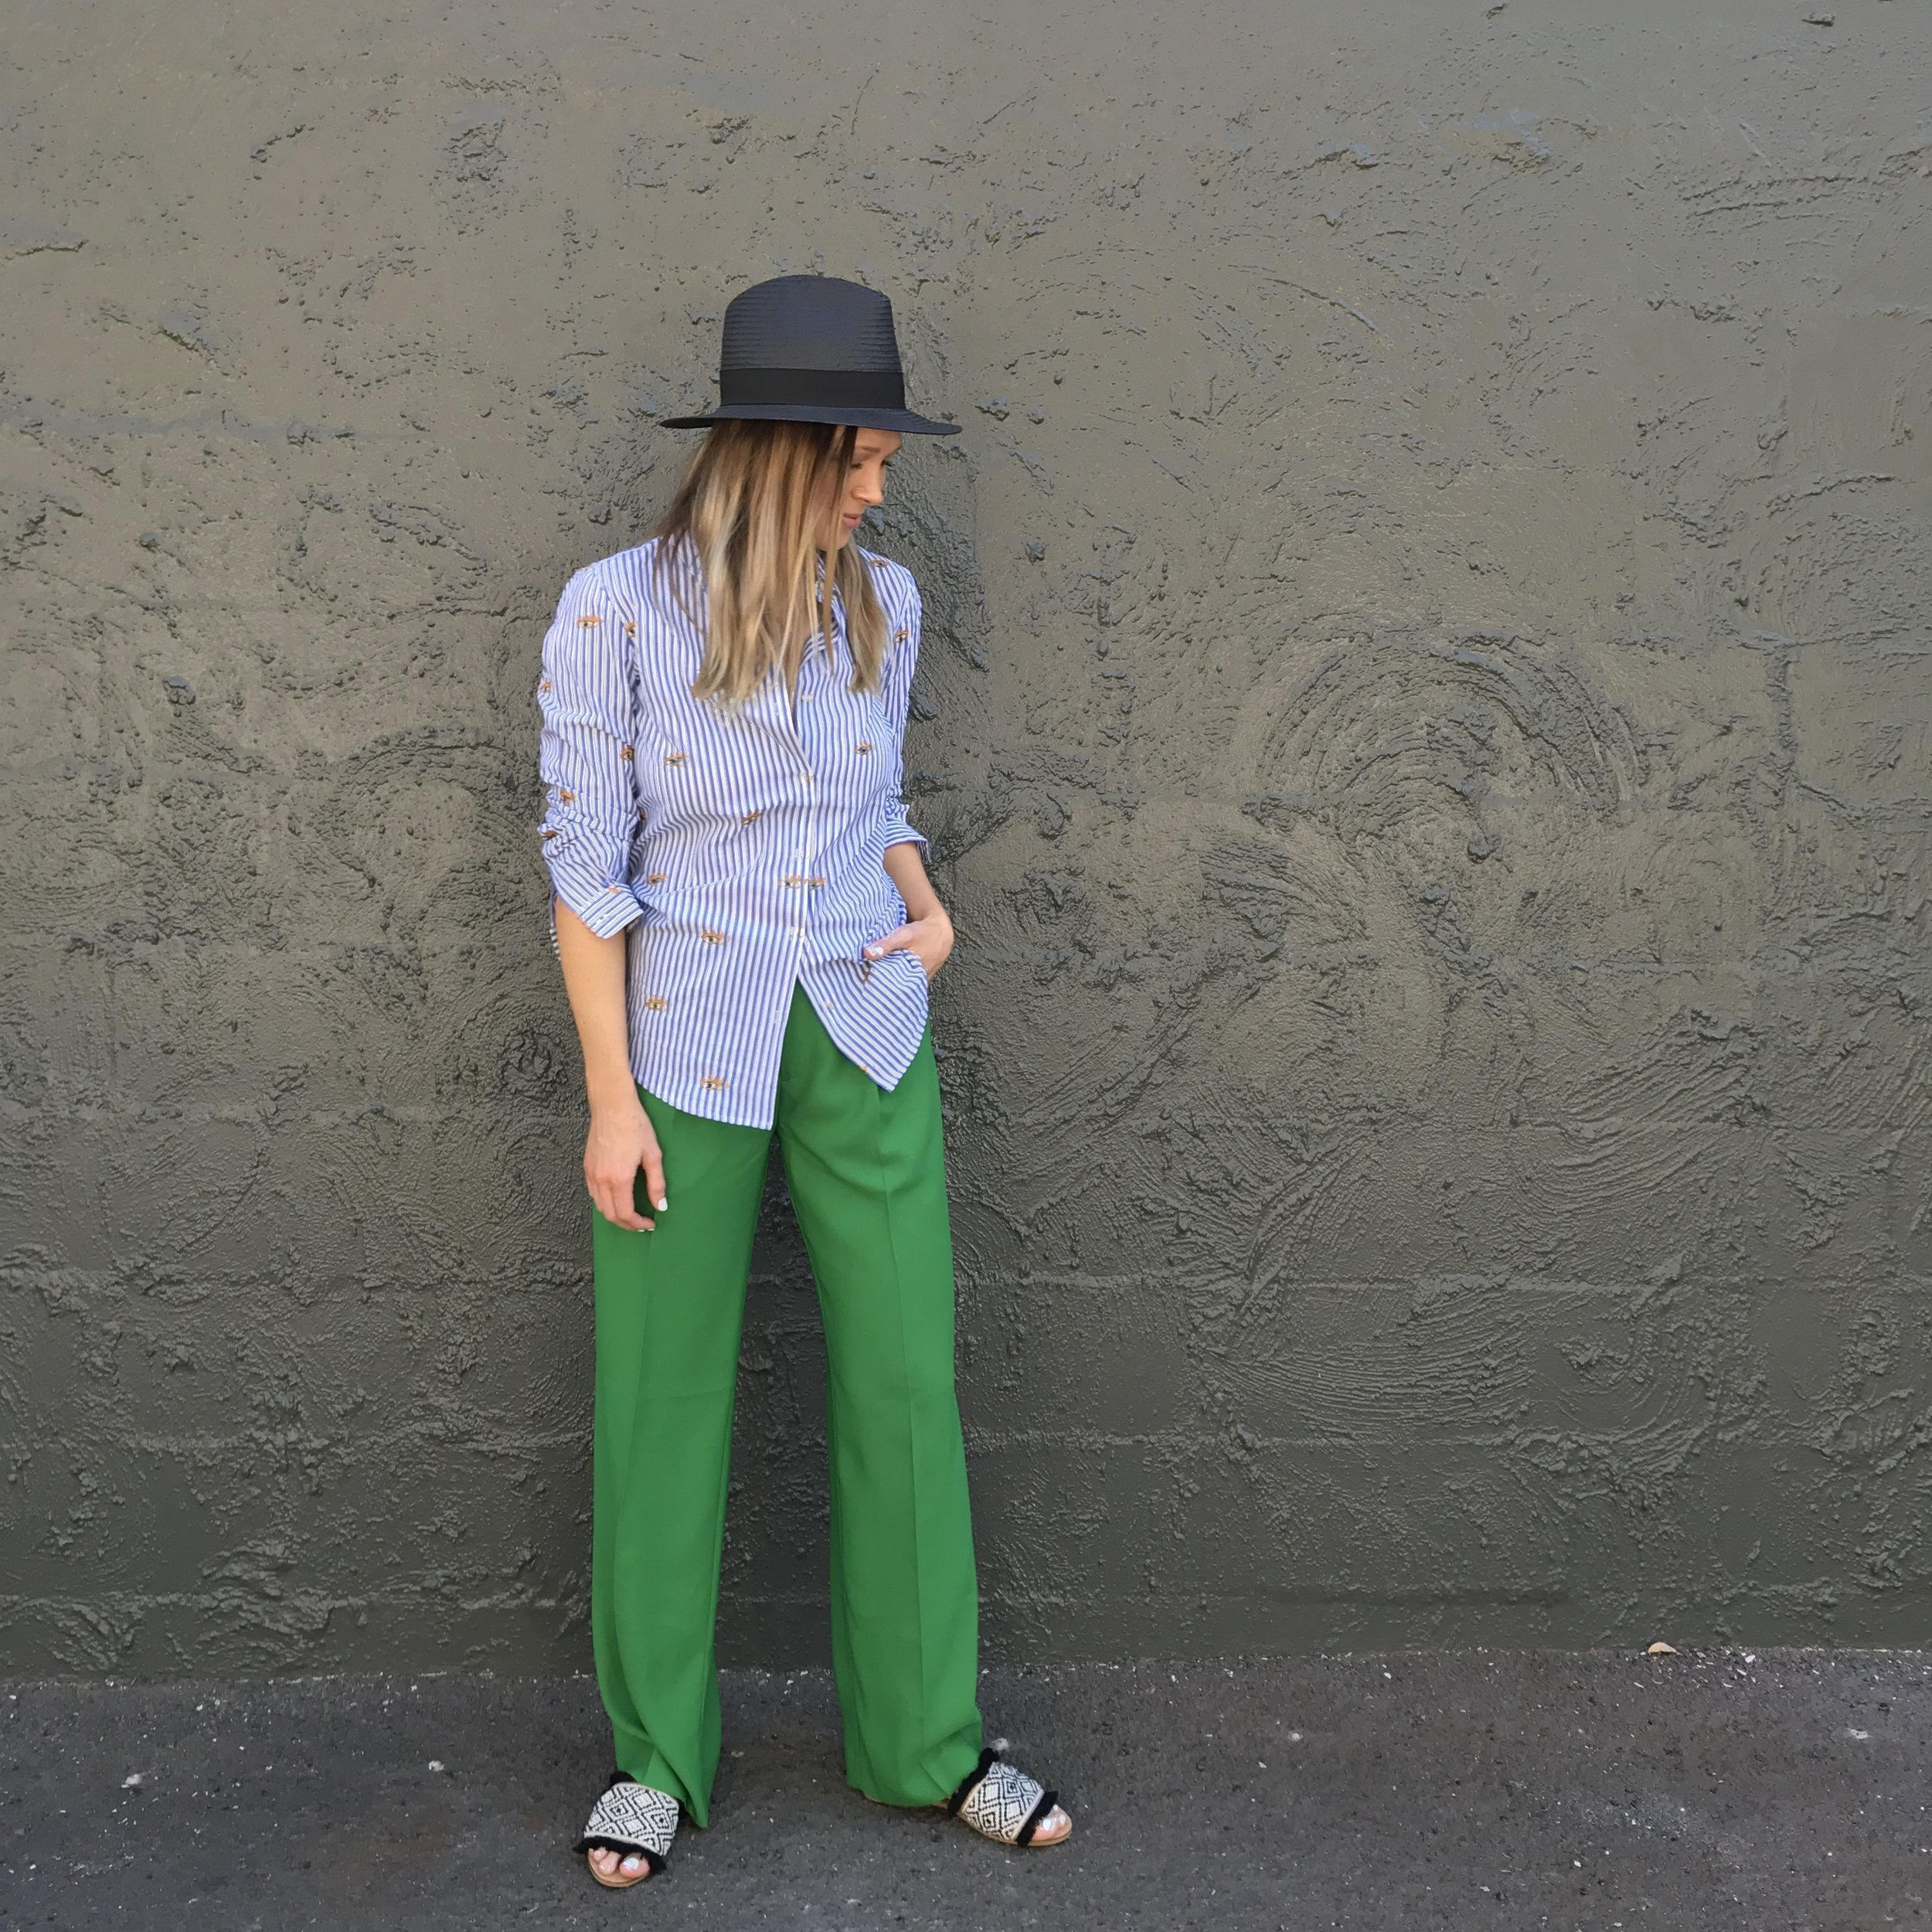 All. About. These. Pants. #scotchandsoda